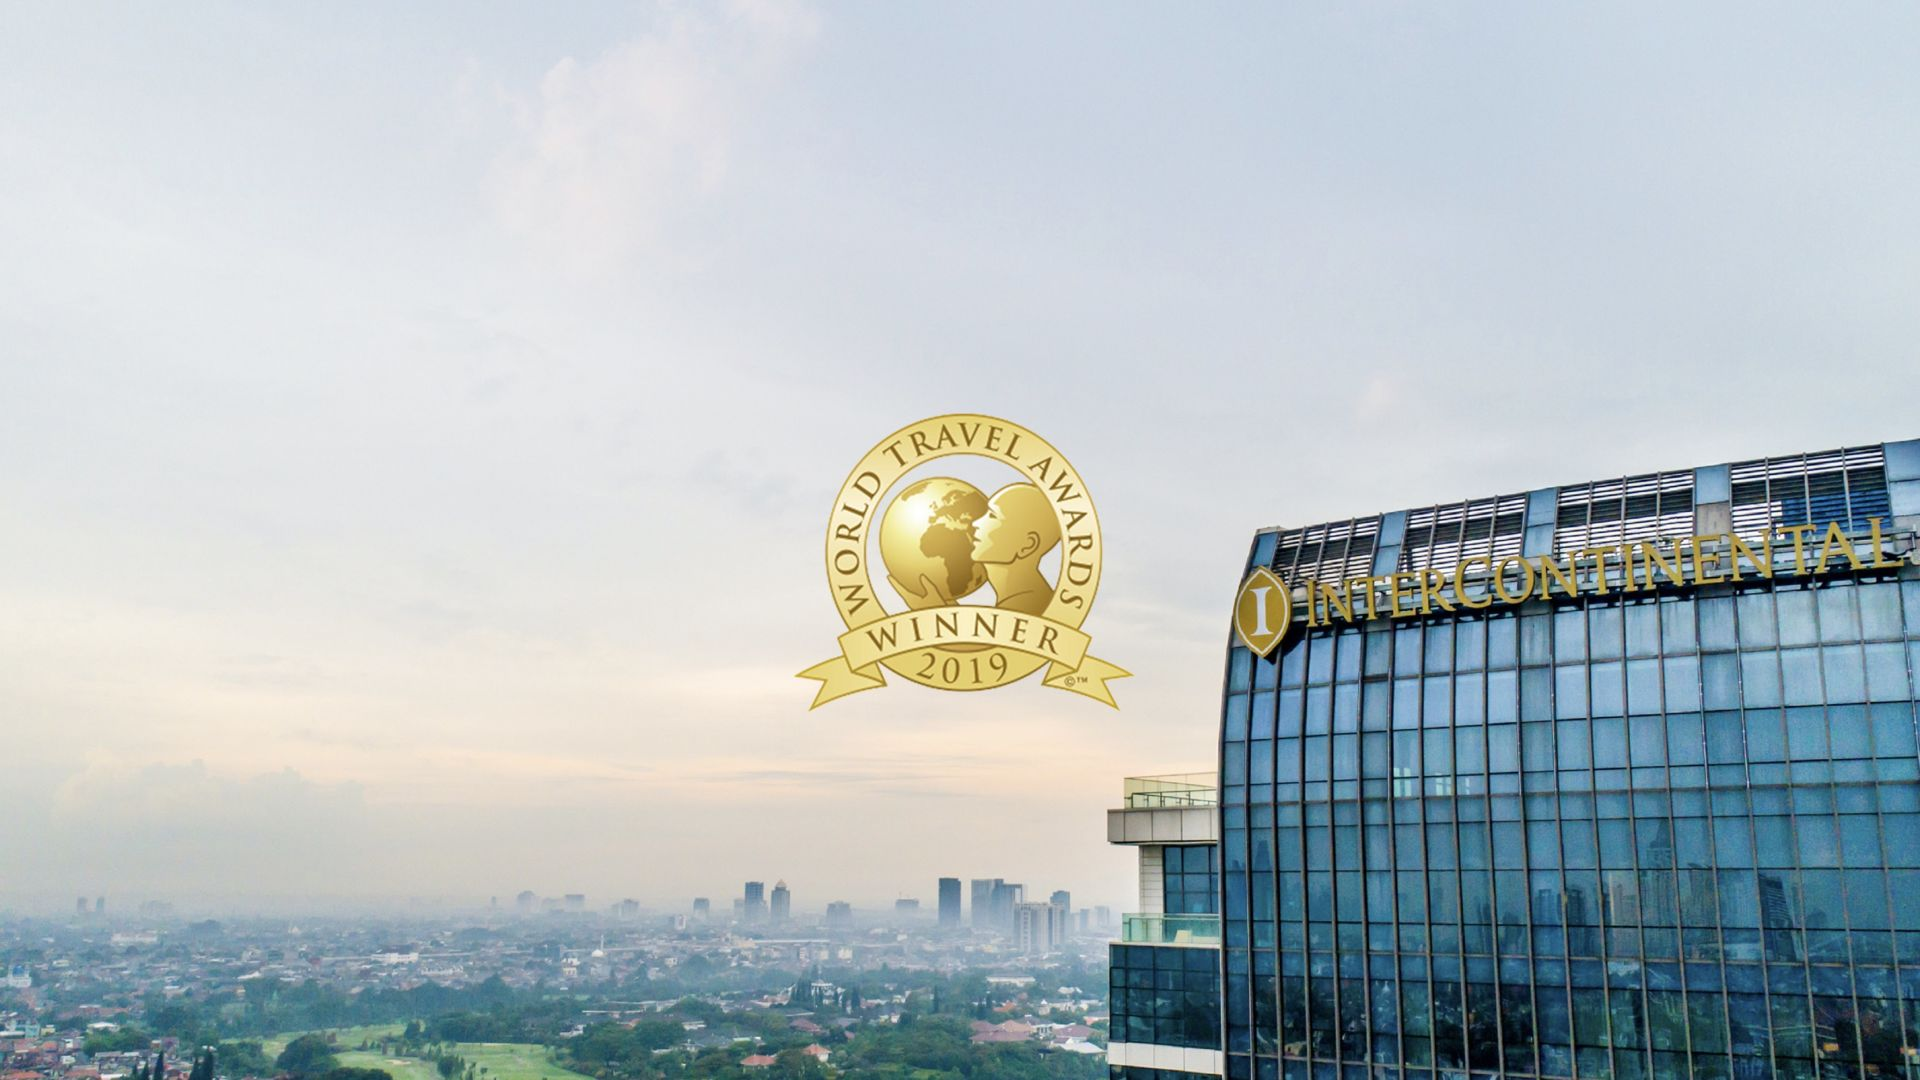 | Asia's Leading Luxury Hotel | Indonesia's Leading Hotel 2019